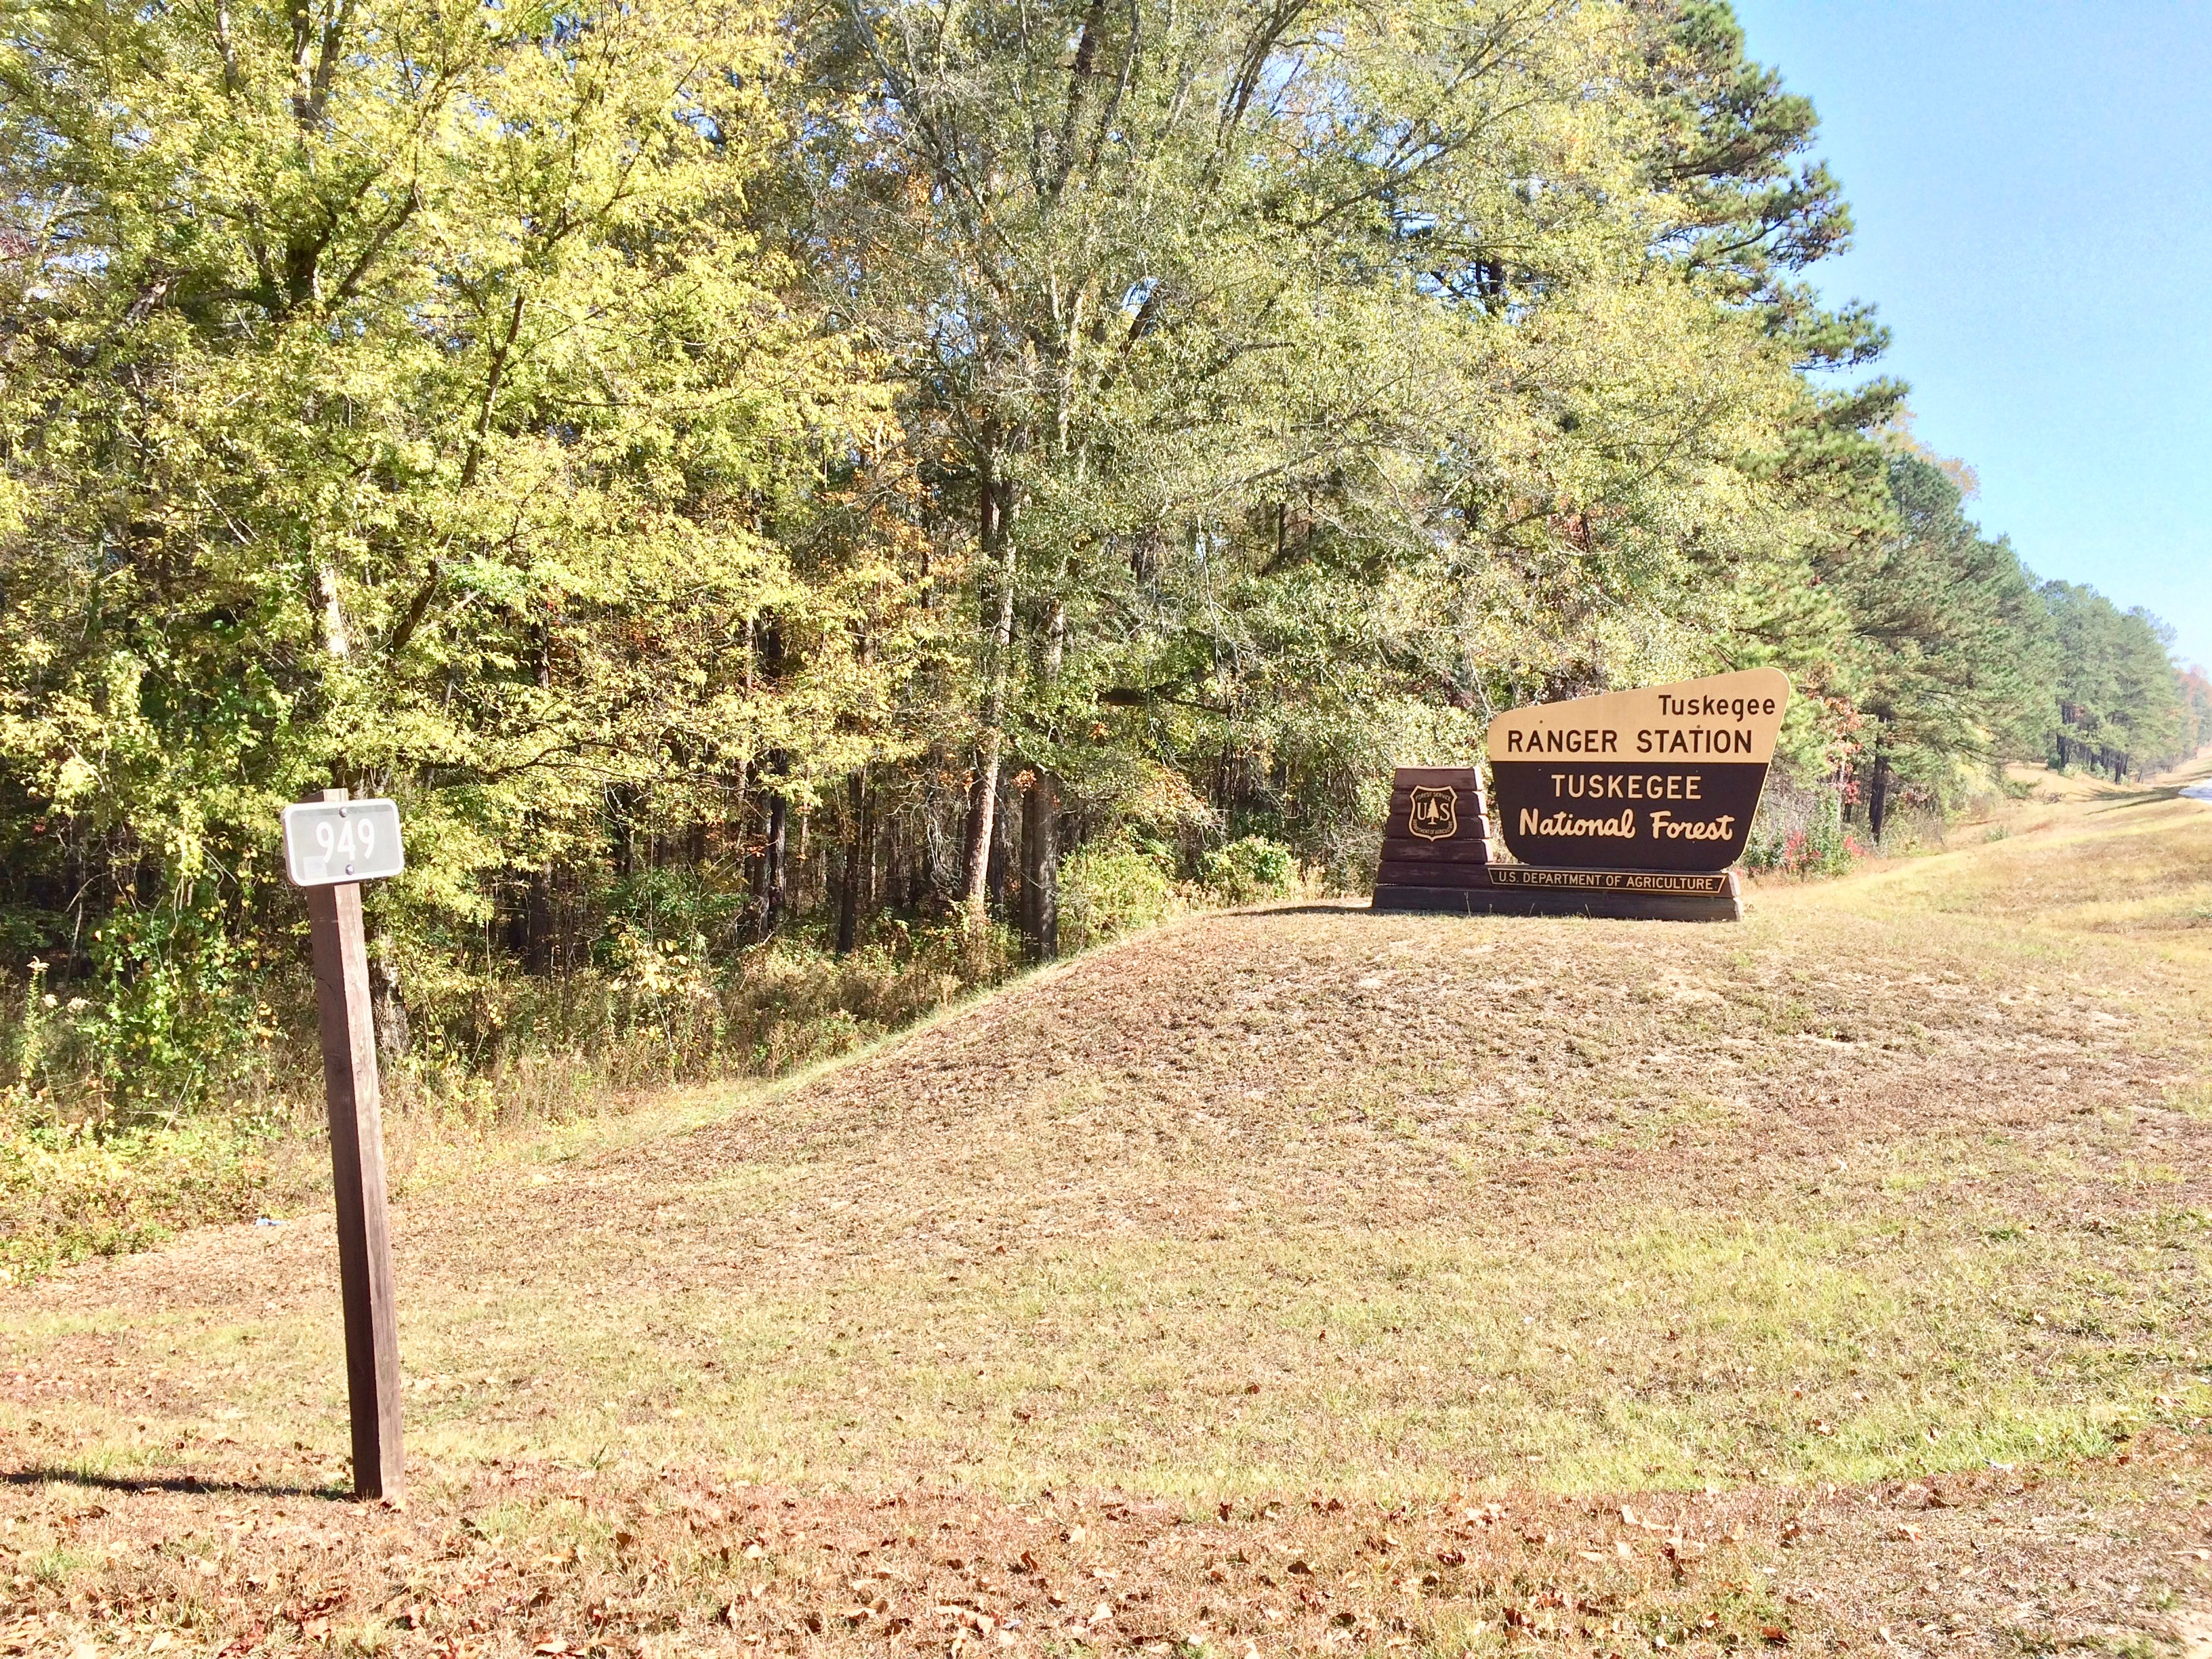 Entrance to Tuskegee National Forest Road 949 and to the Ranger Station off Alabama Highway 186.